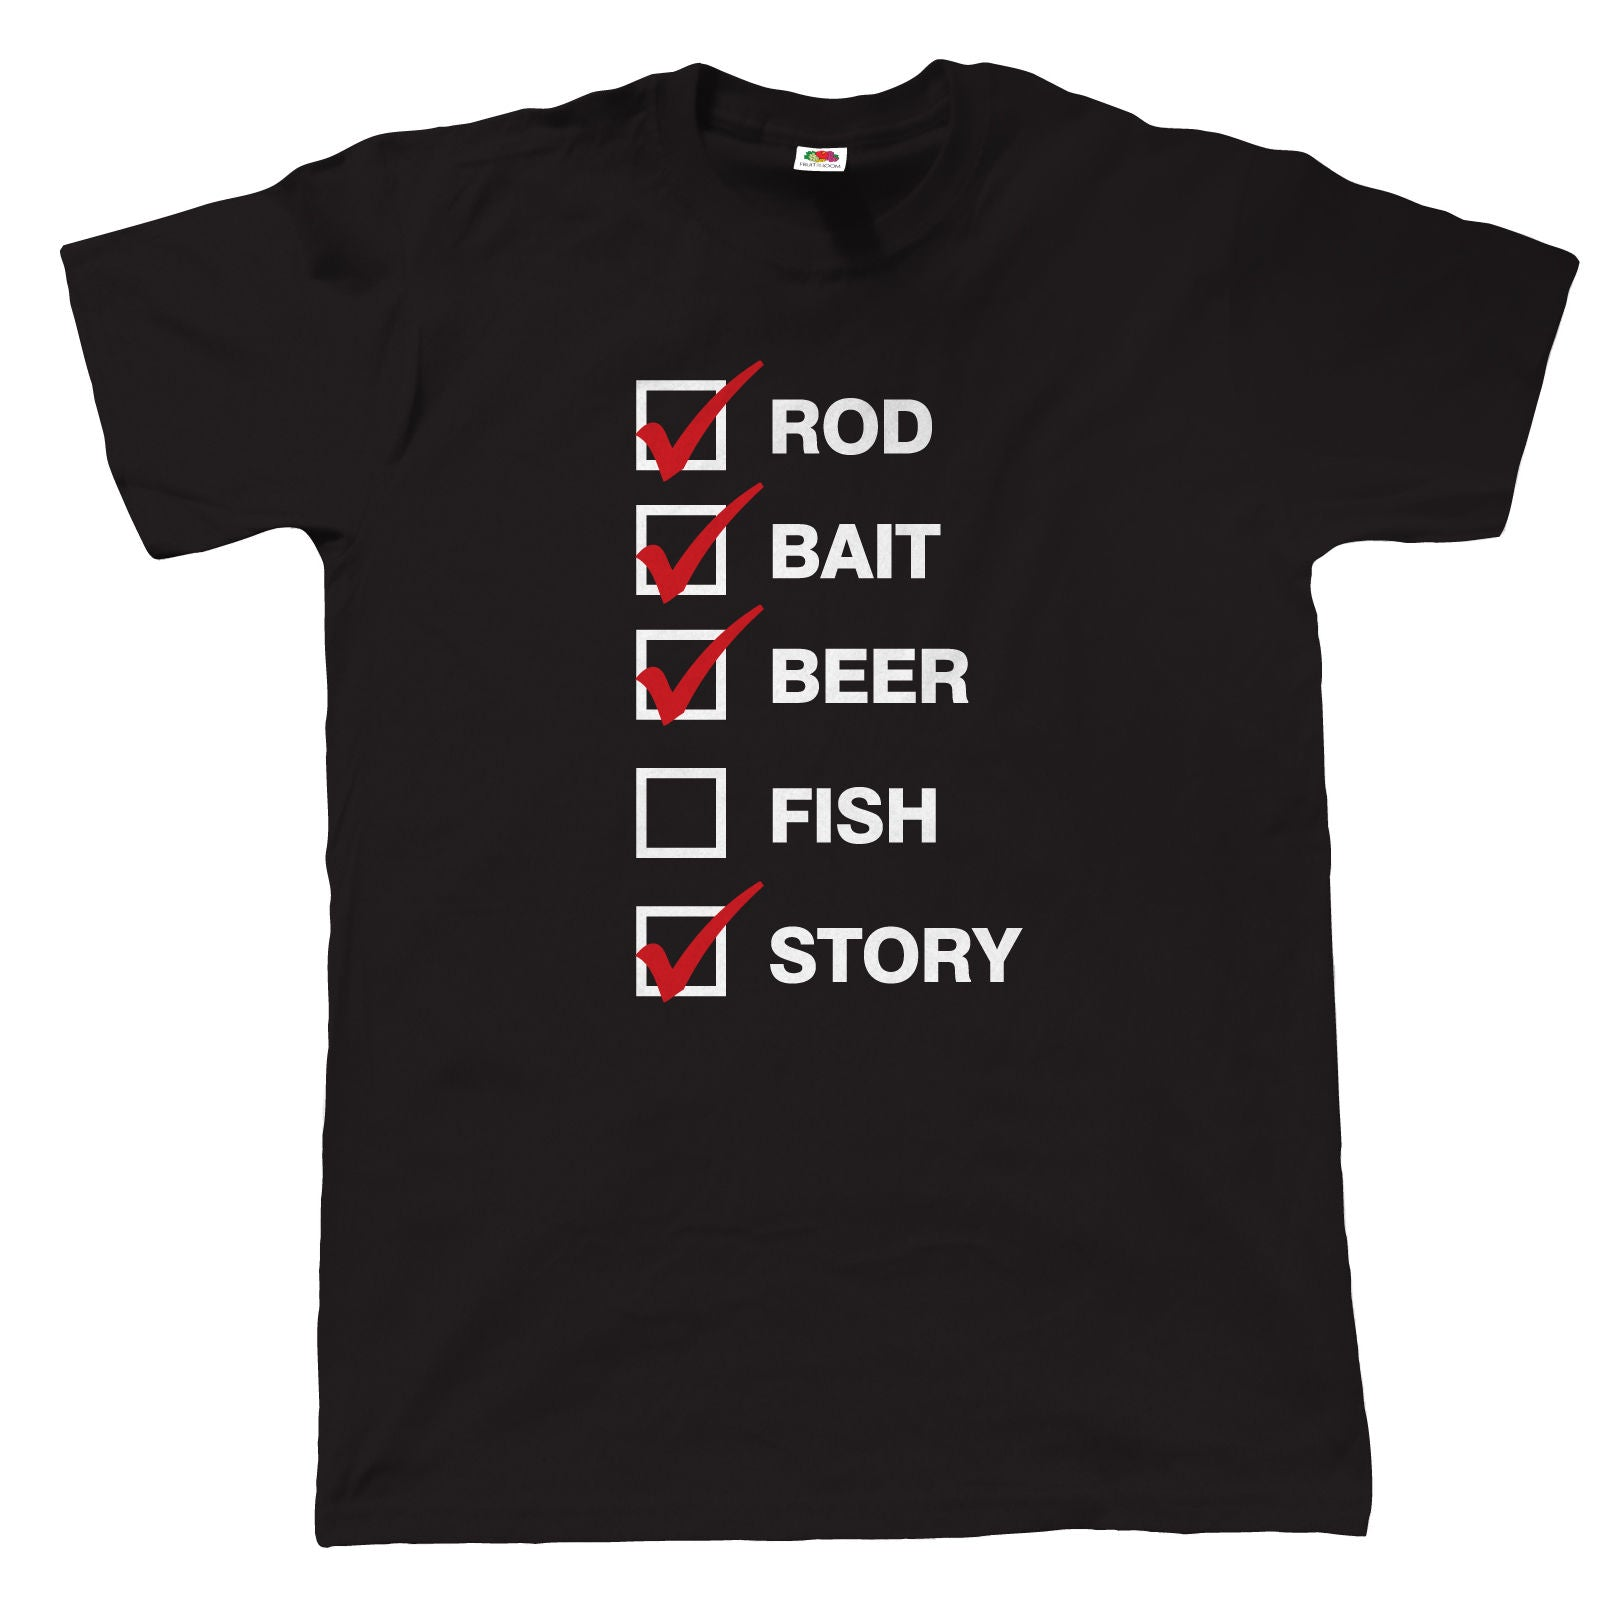 Rod Bait Beer, Mens Funny Fishing T Shirt | Coarse Carp Sea Match Fly Specimen Tackle Fishermen Clothing Angling Angler | Cool Birthday Christmas Gift Present Him Dad Husband Son Grandad